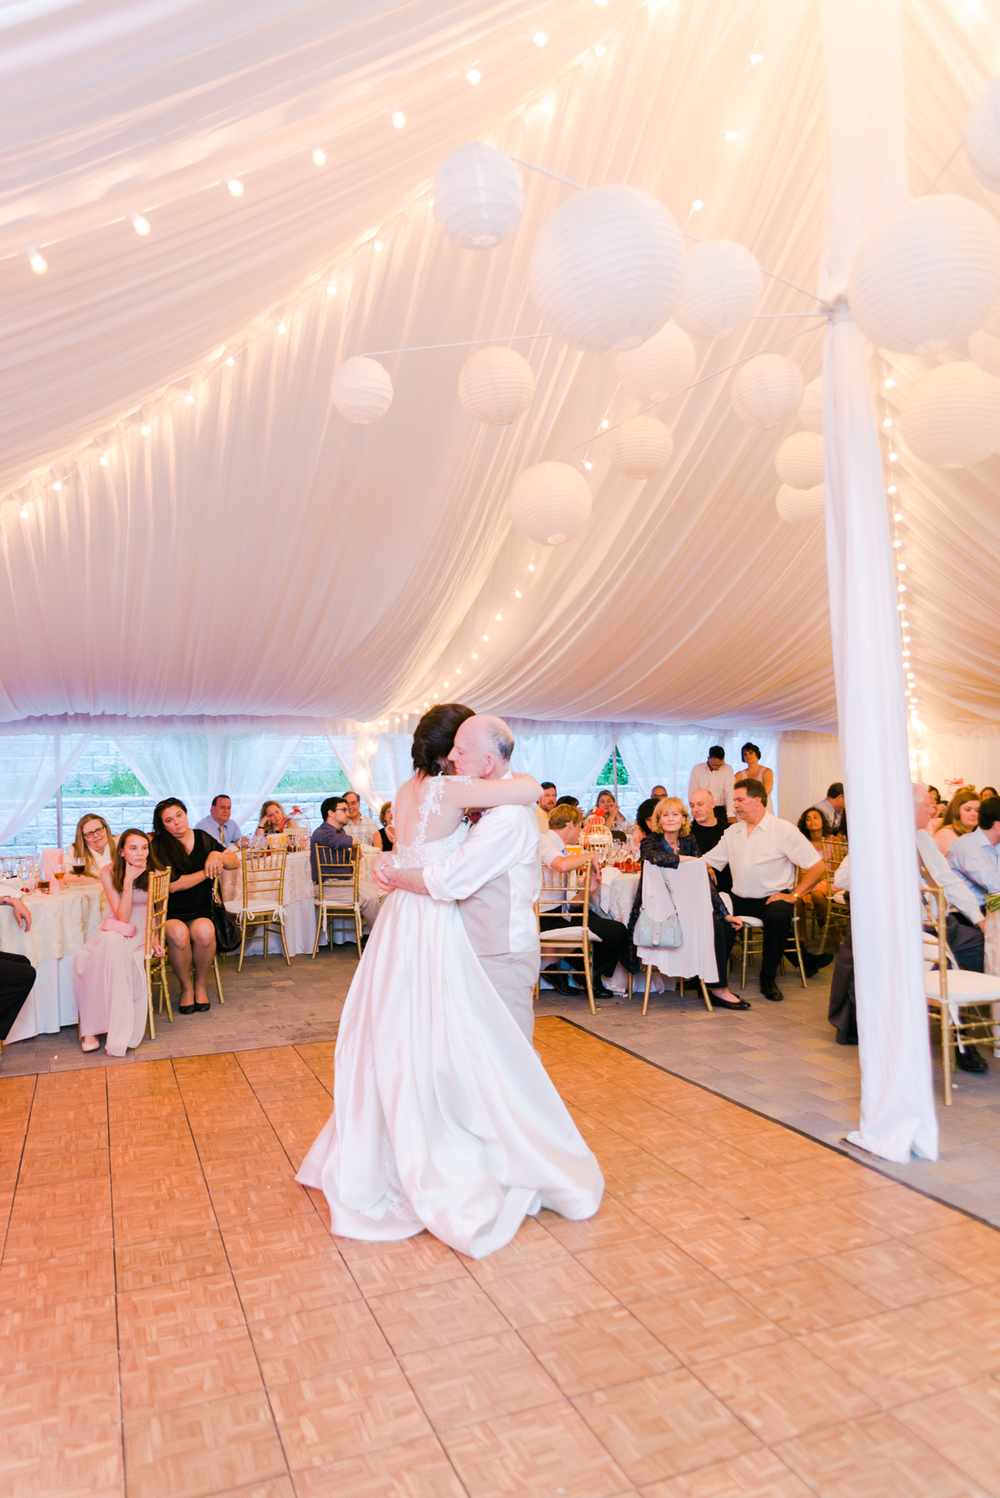 ChesterWedding_07262015_3666.JPG